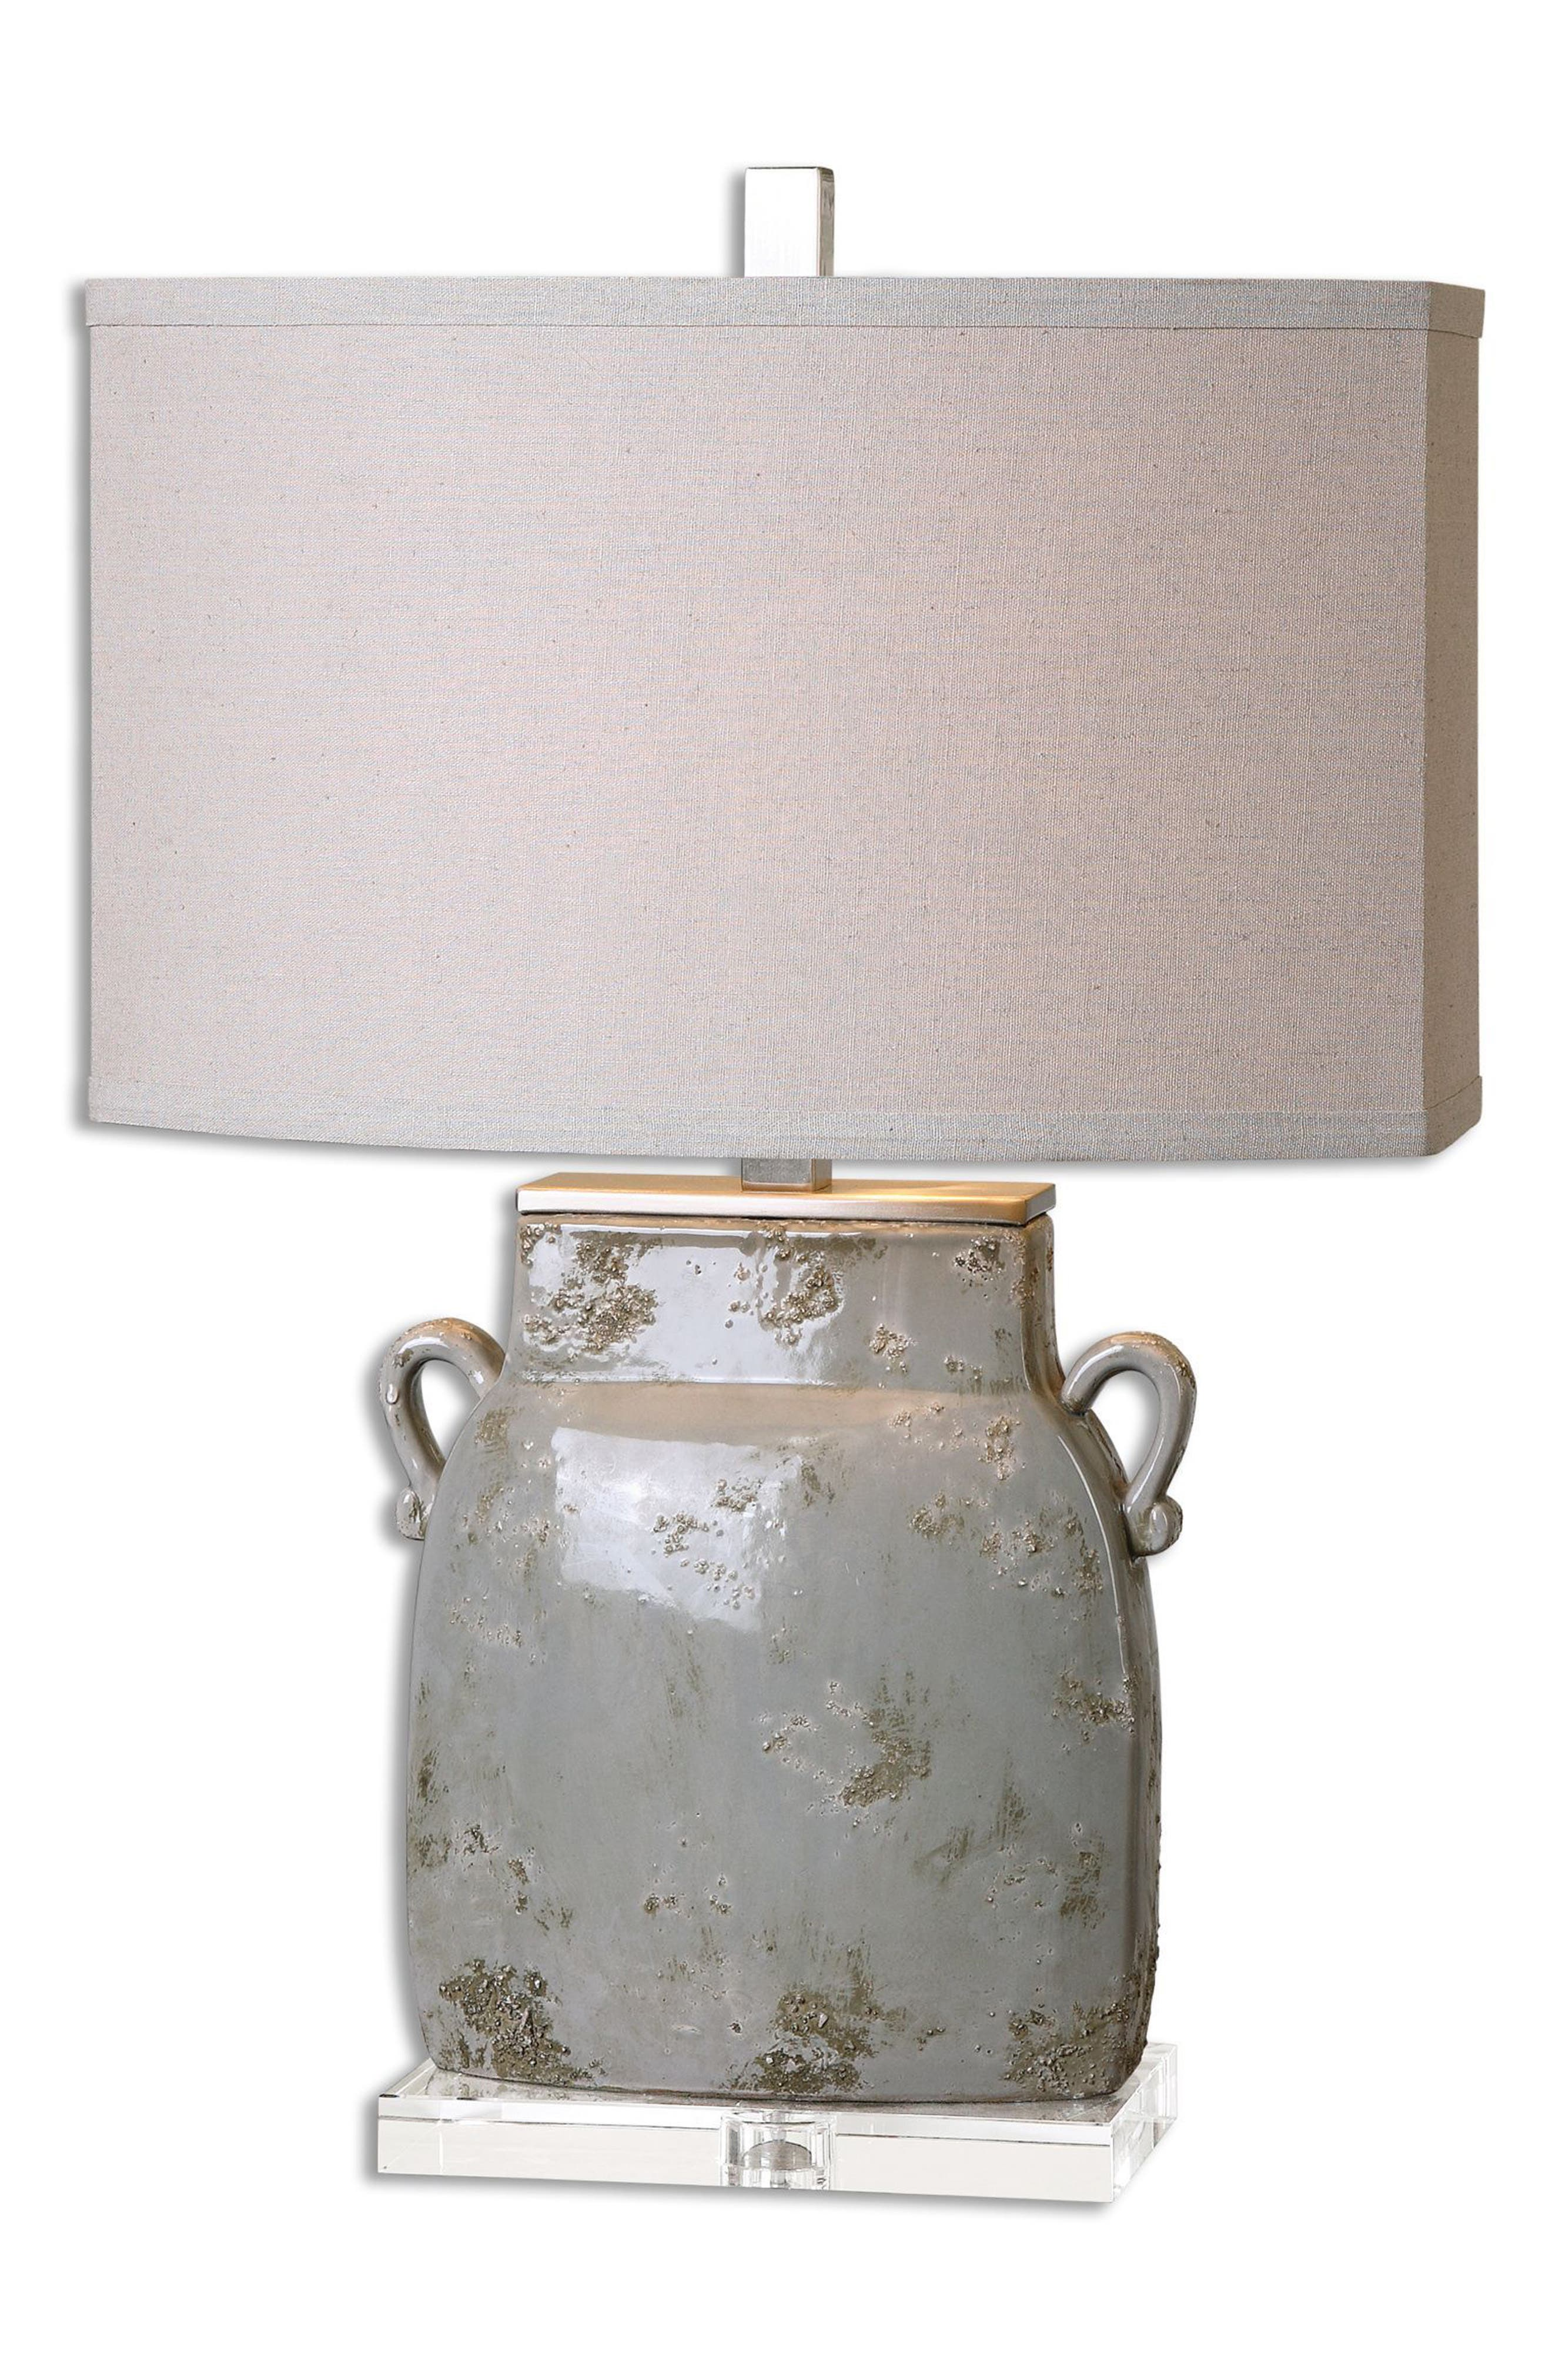 Melizzano Table Lamp,                             Main thumbnail 1, color,                             Ivory